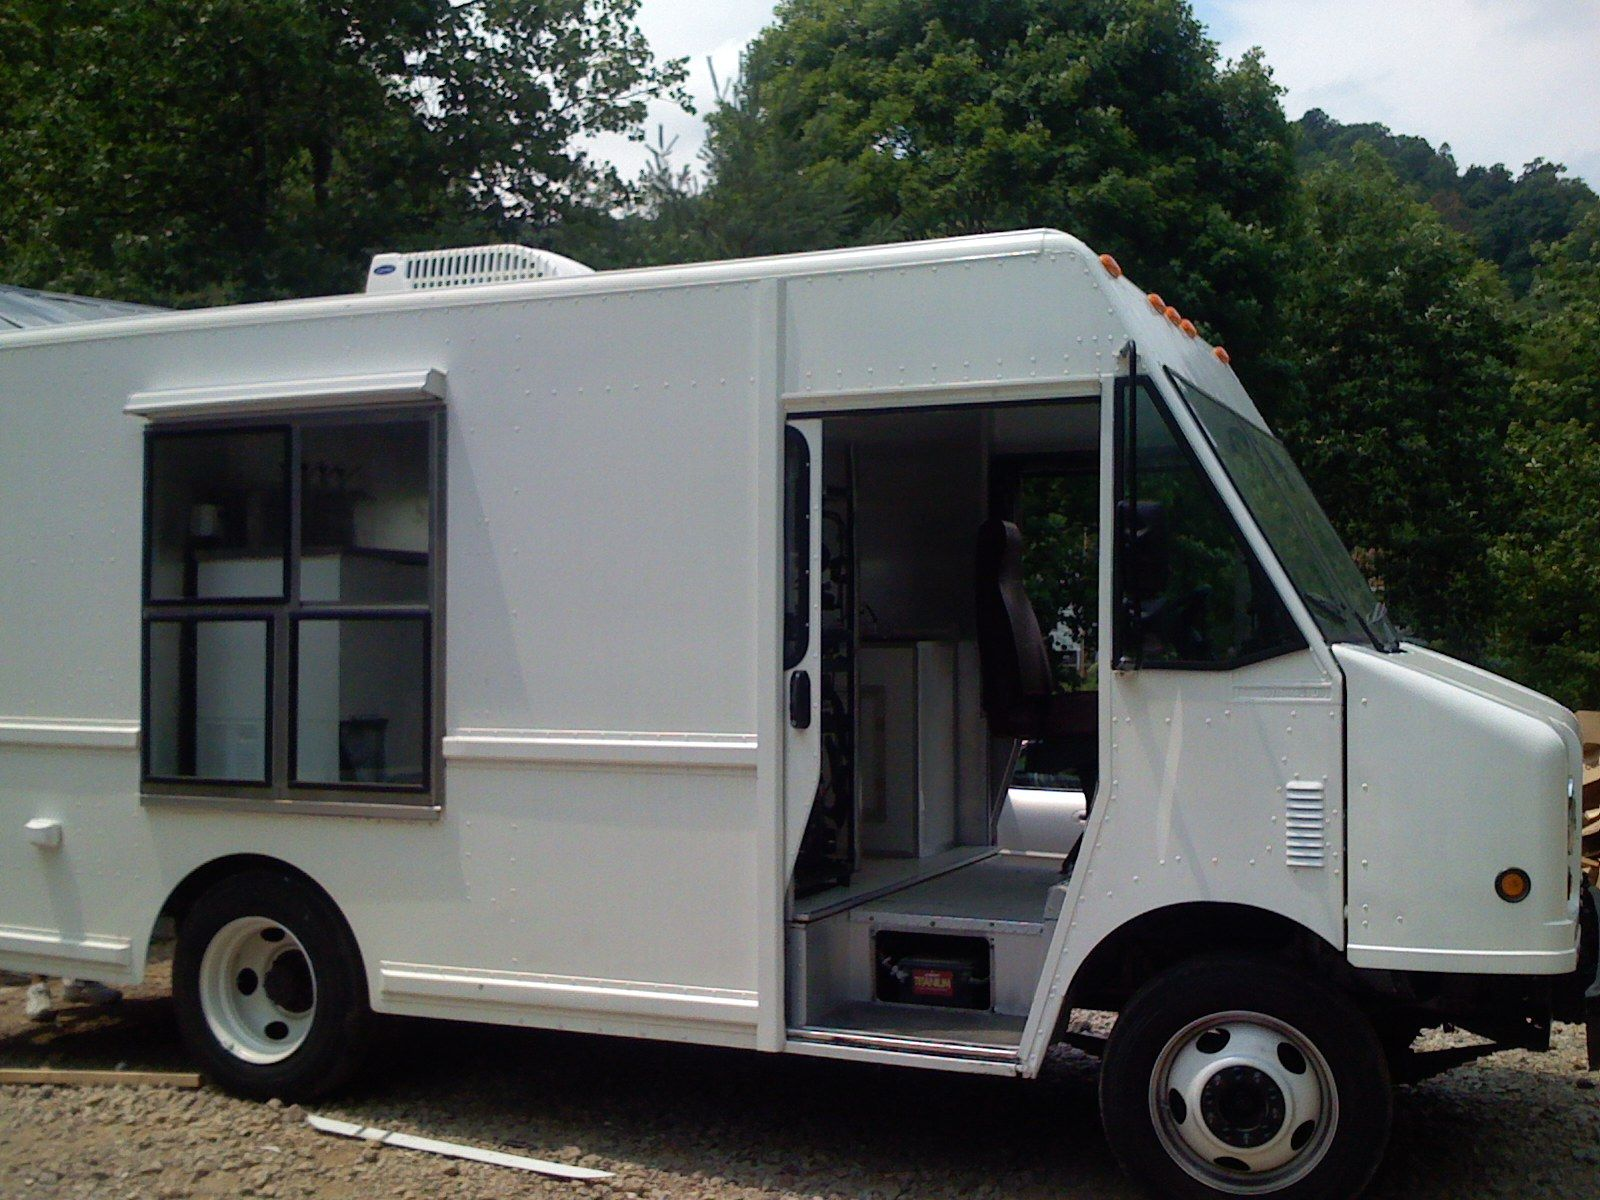 food truck for sale craigslist - Google Search